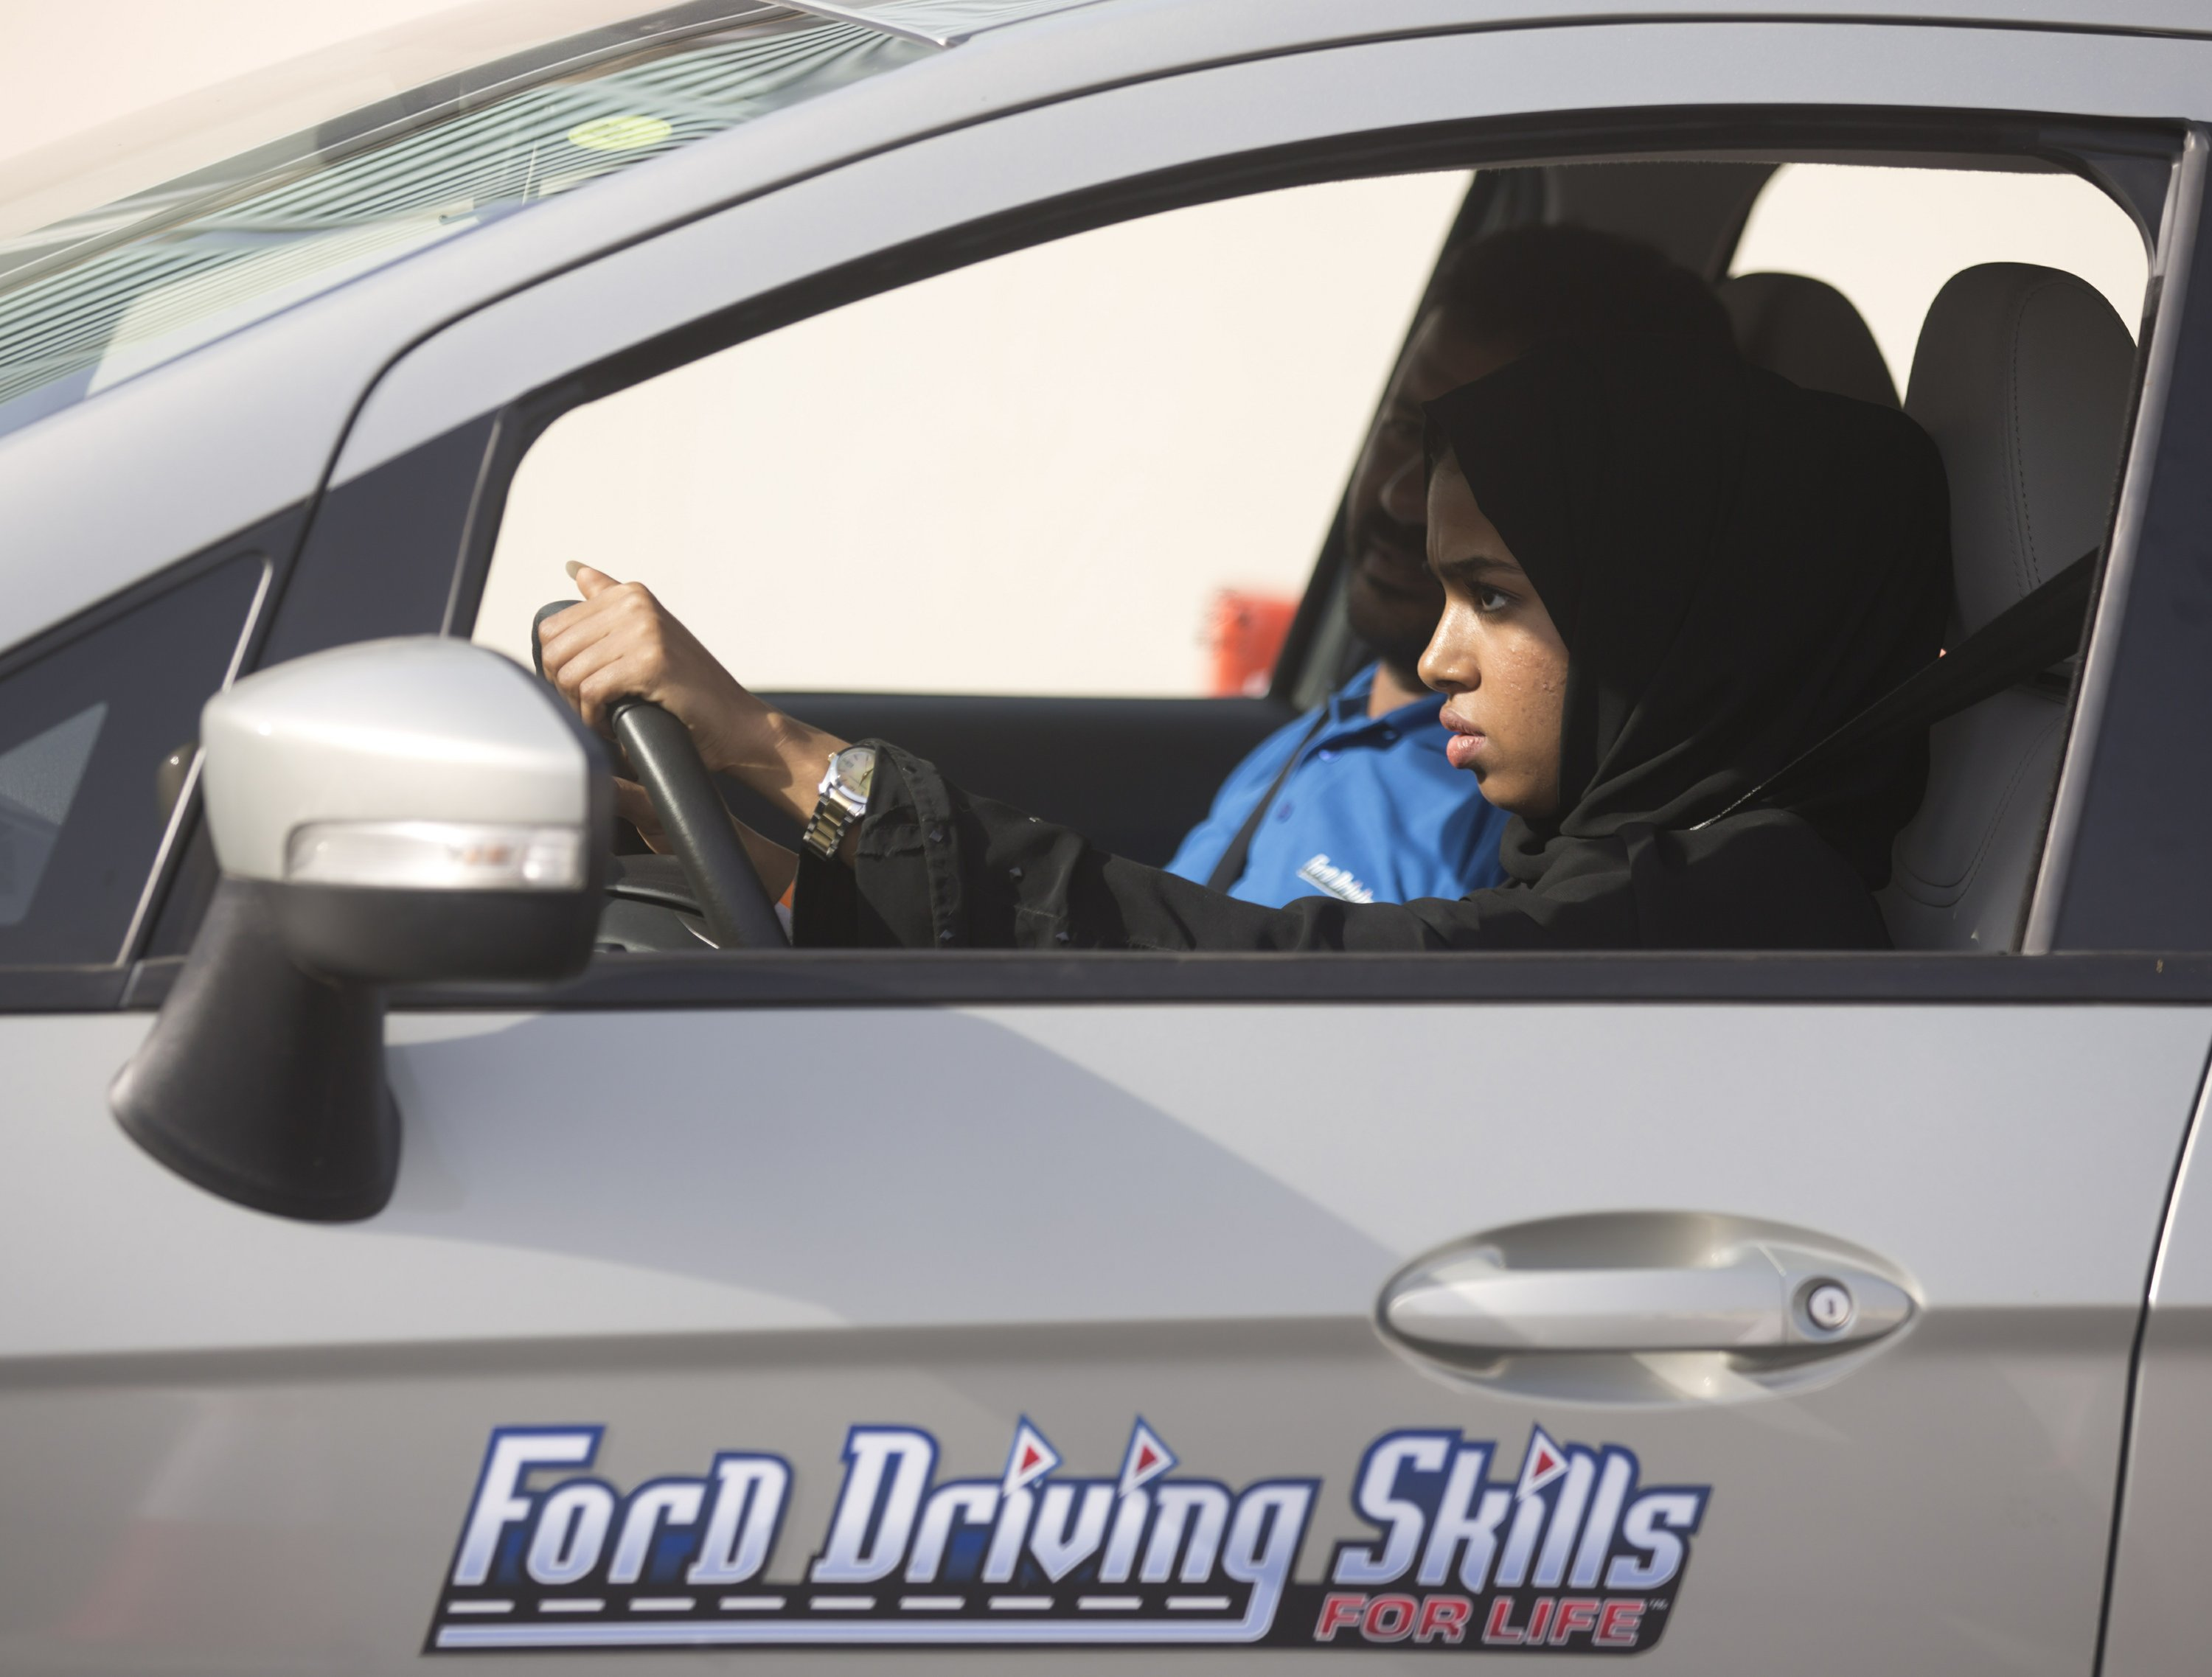 Saudi women take the wheel, test-driving a new freedom thumbnail